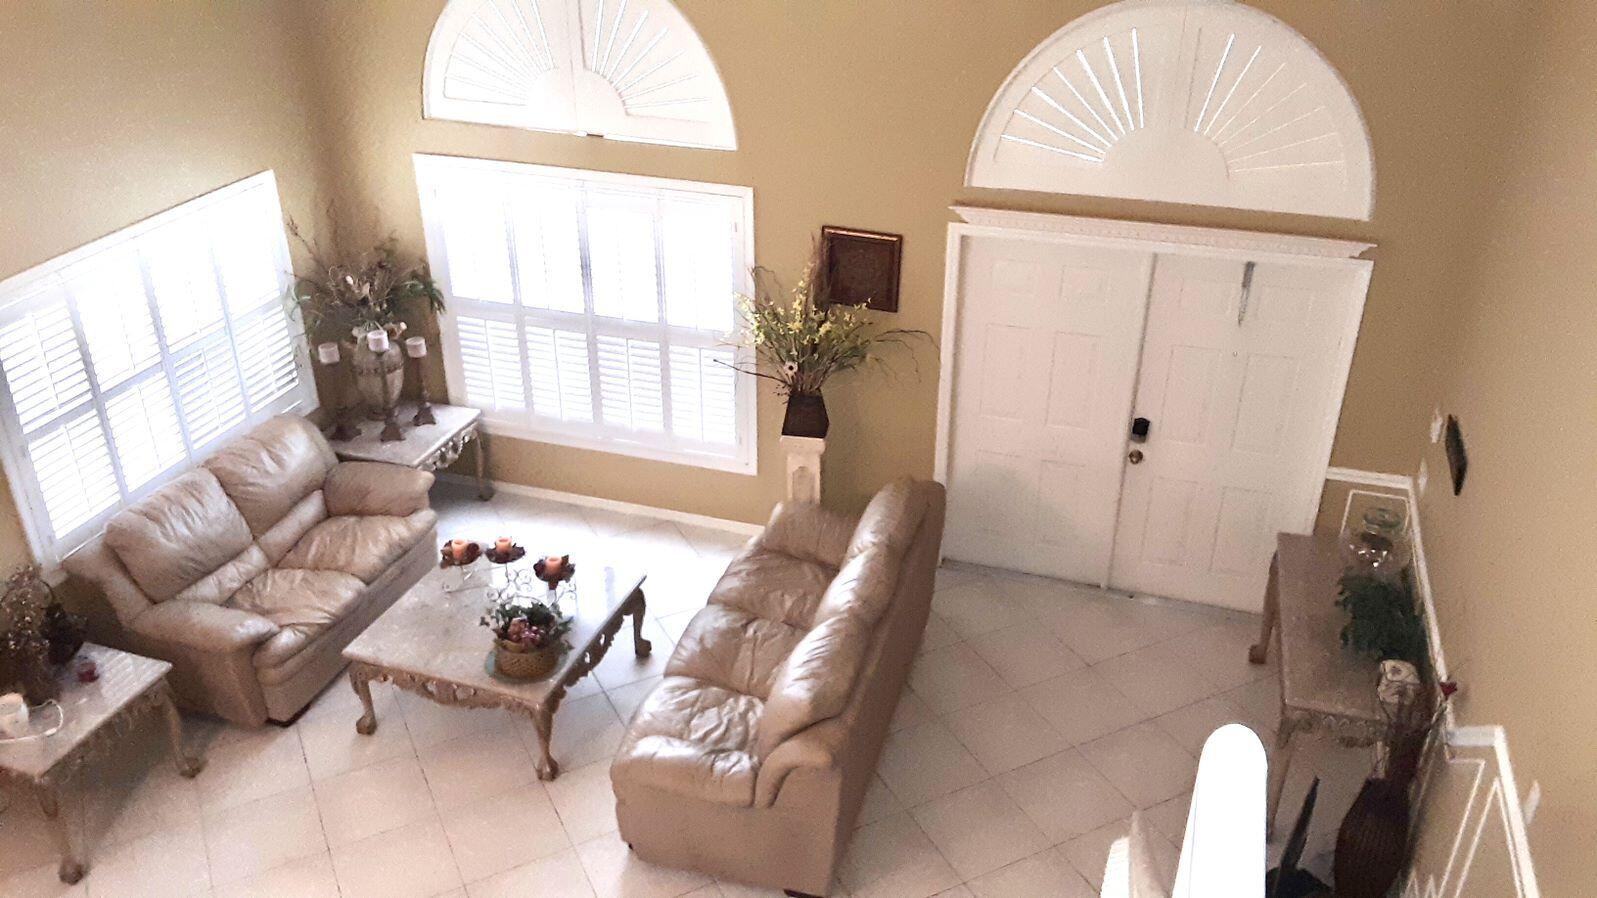 Fromal living room